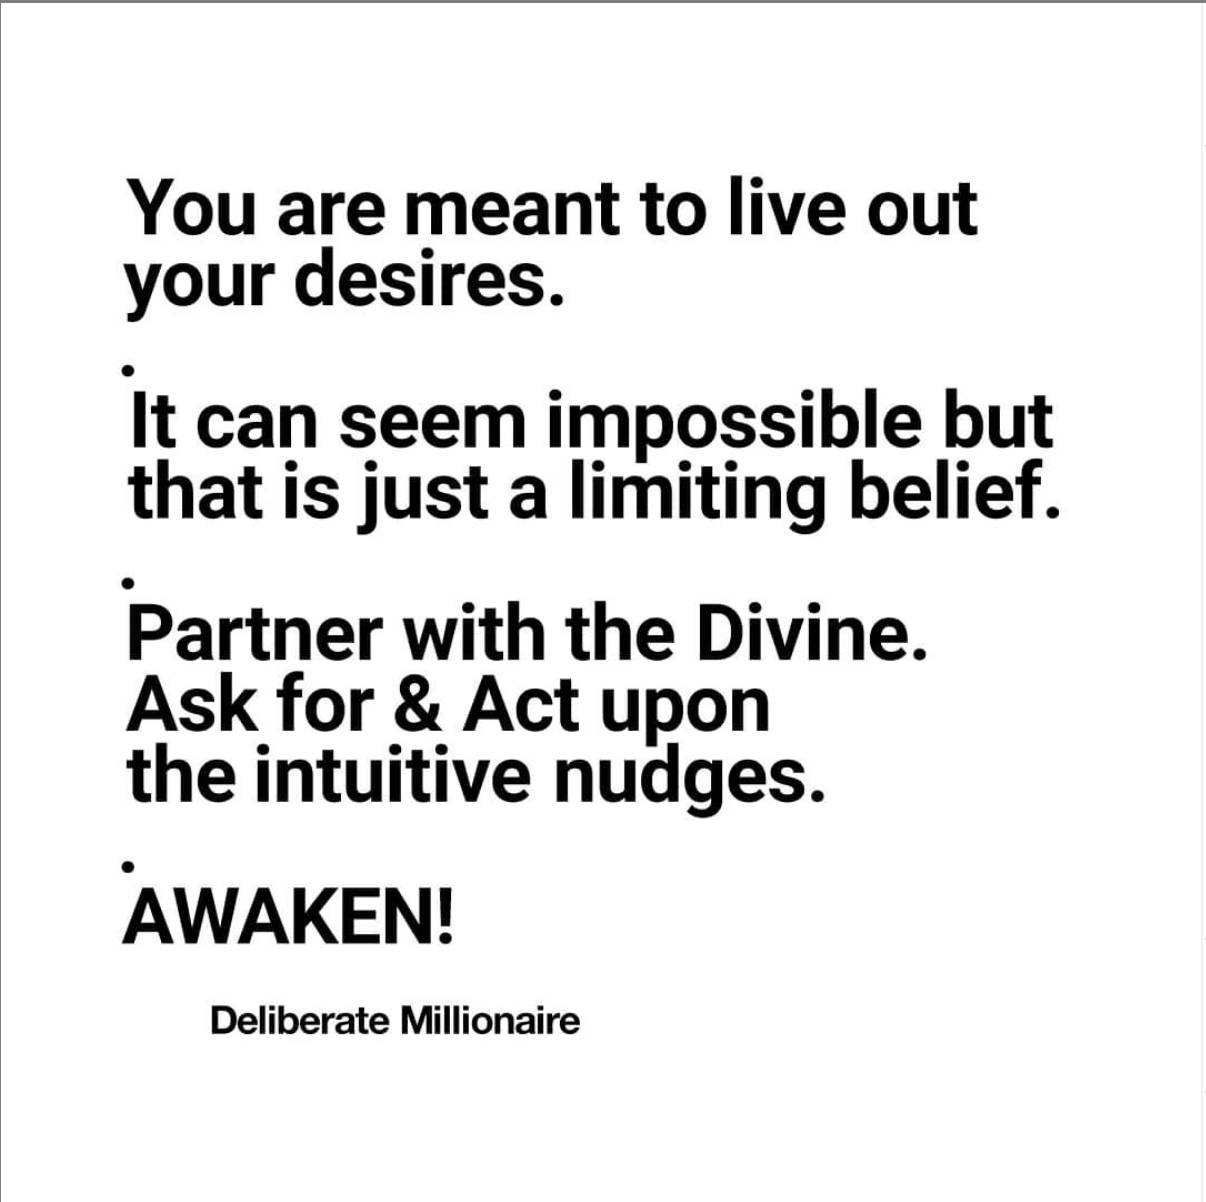 You Are Meant To Live Out Your Desires